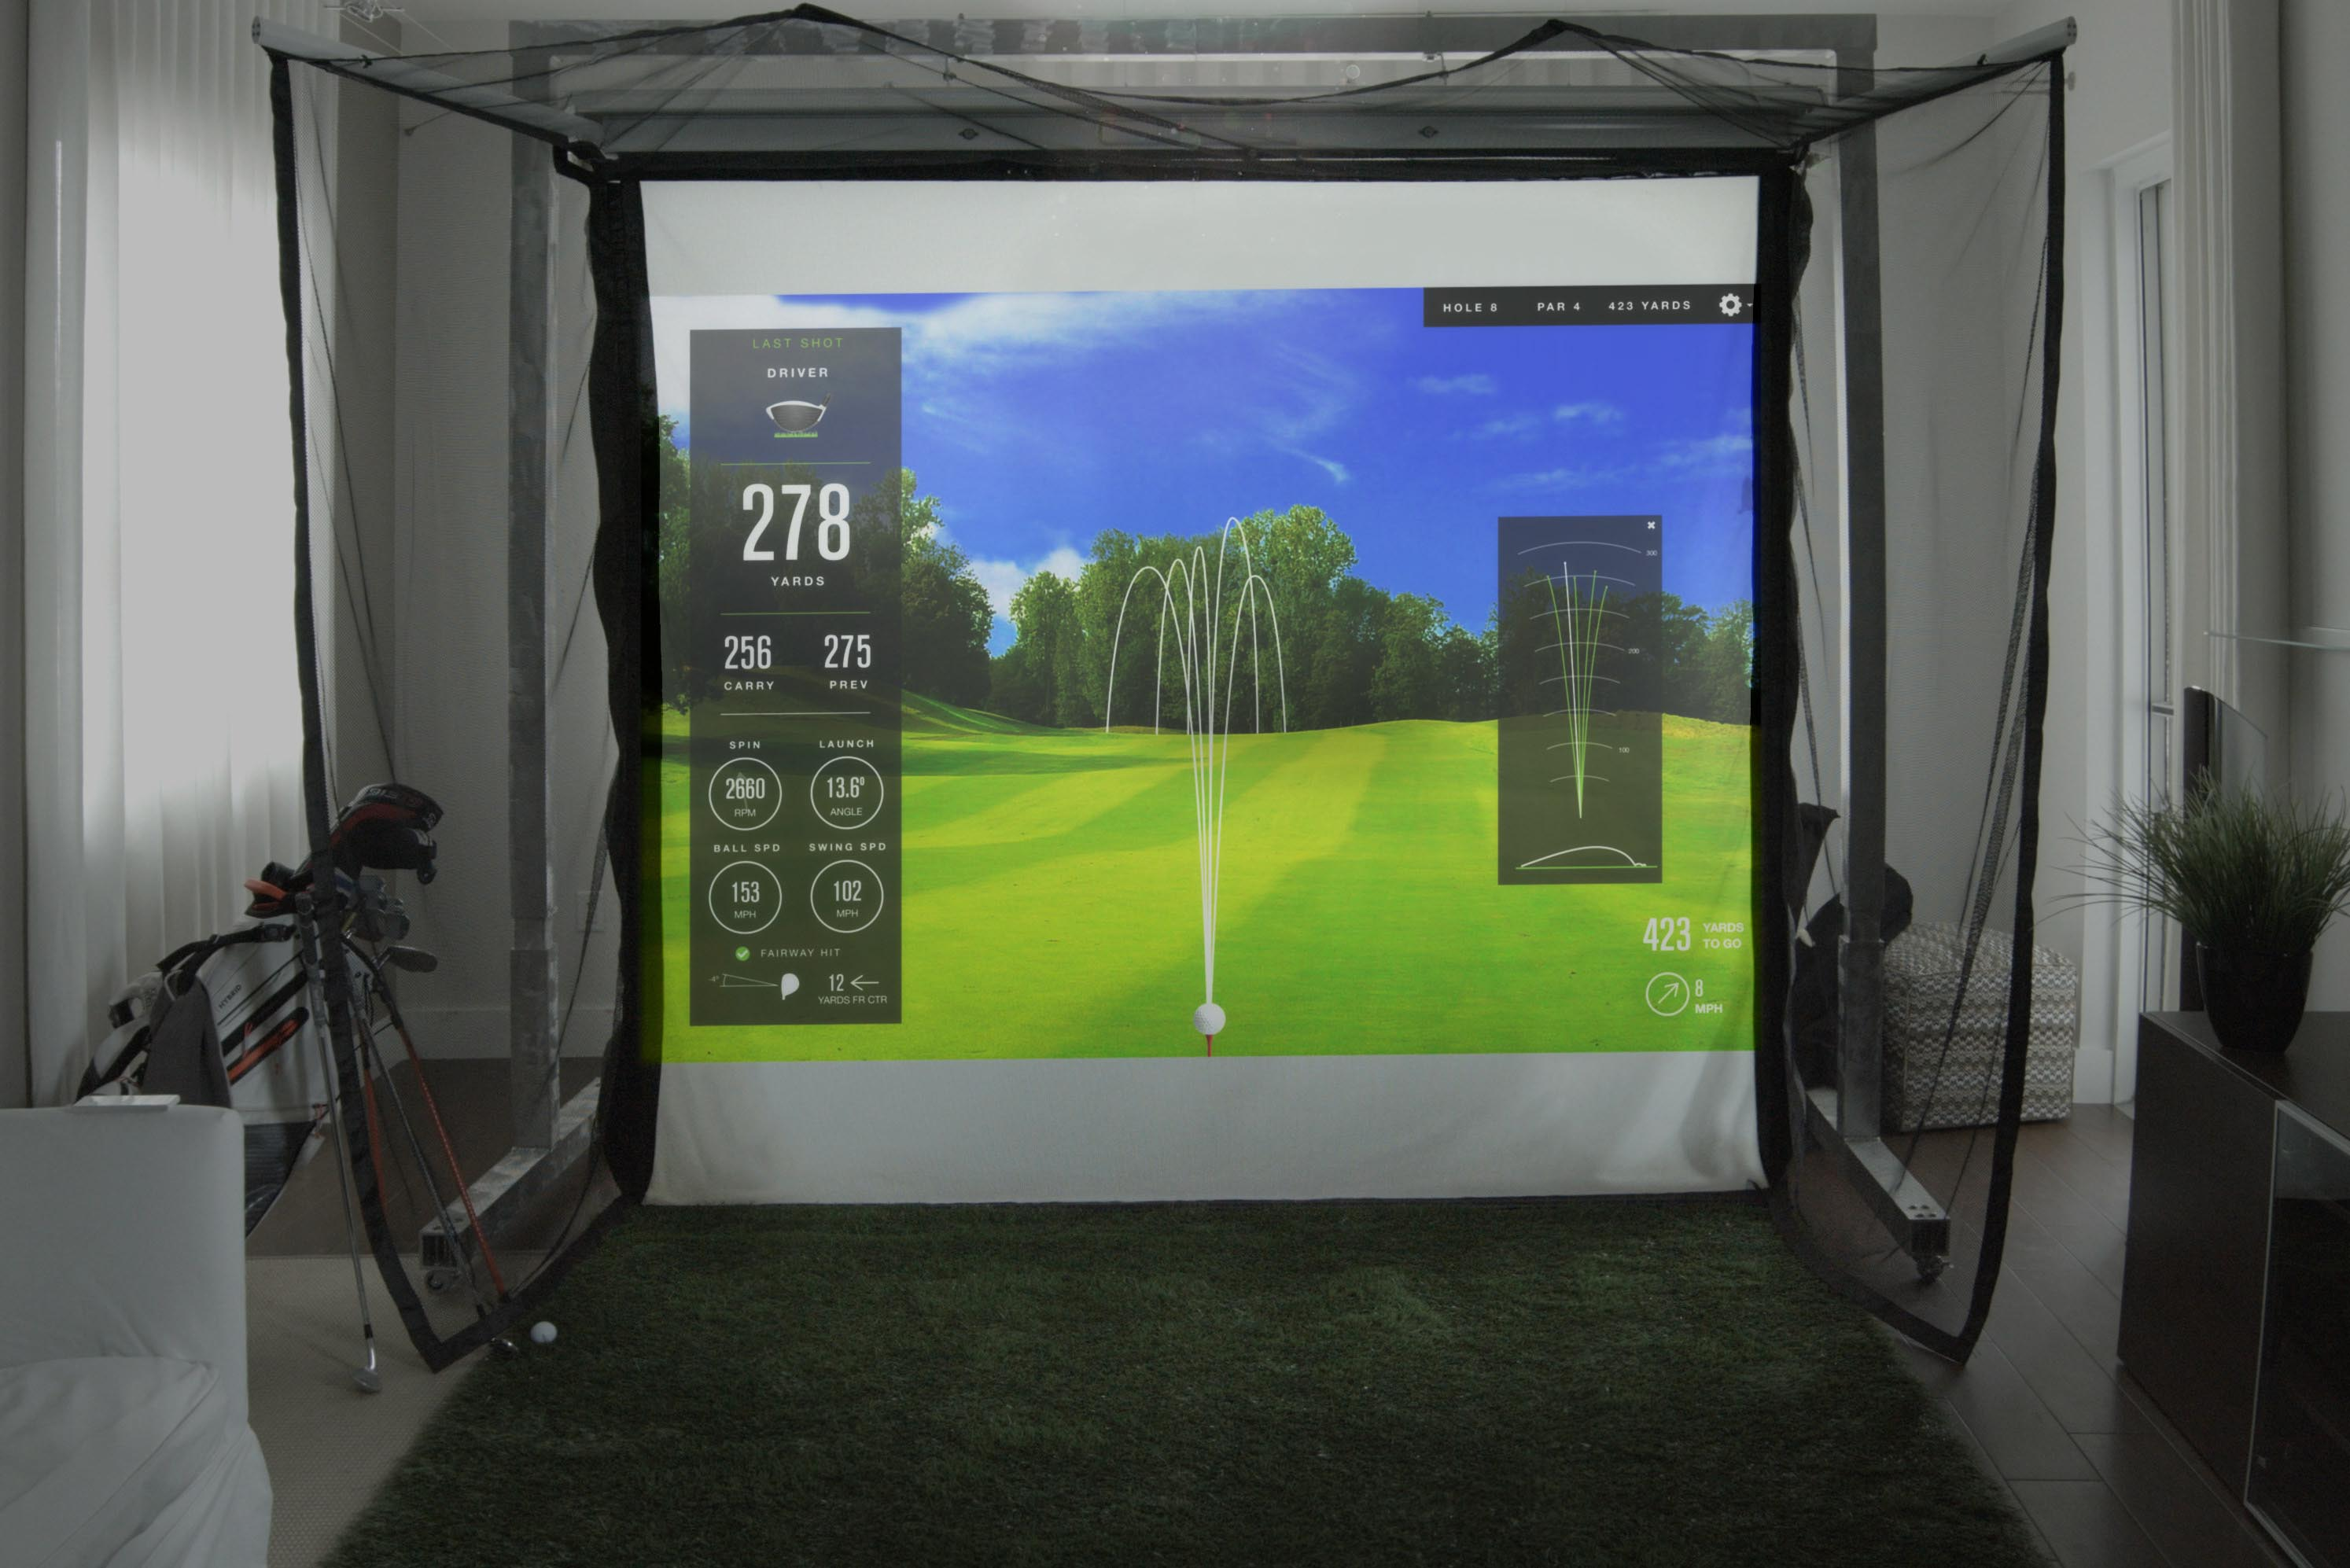 Par2pro 39 s online golf simulator analyzer superstore for Golf simulator room dimensions